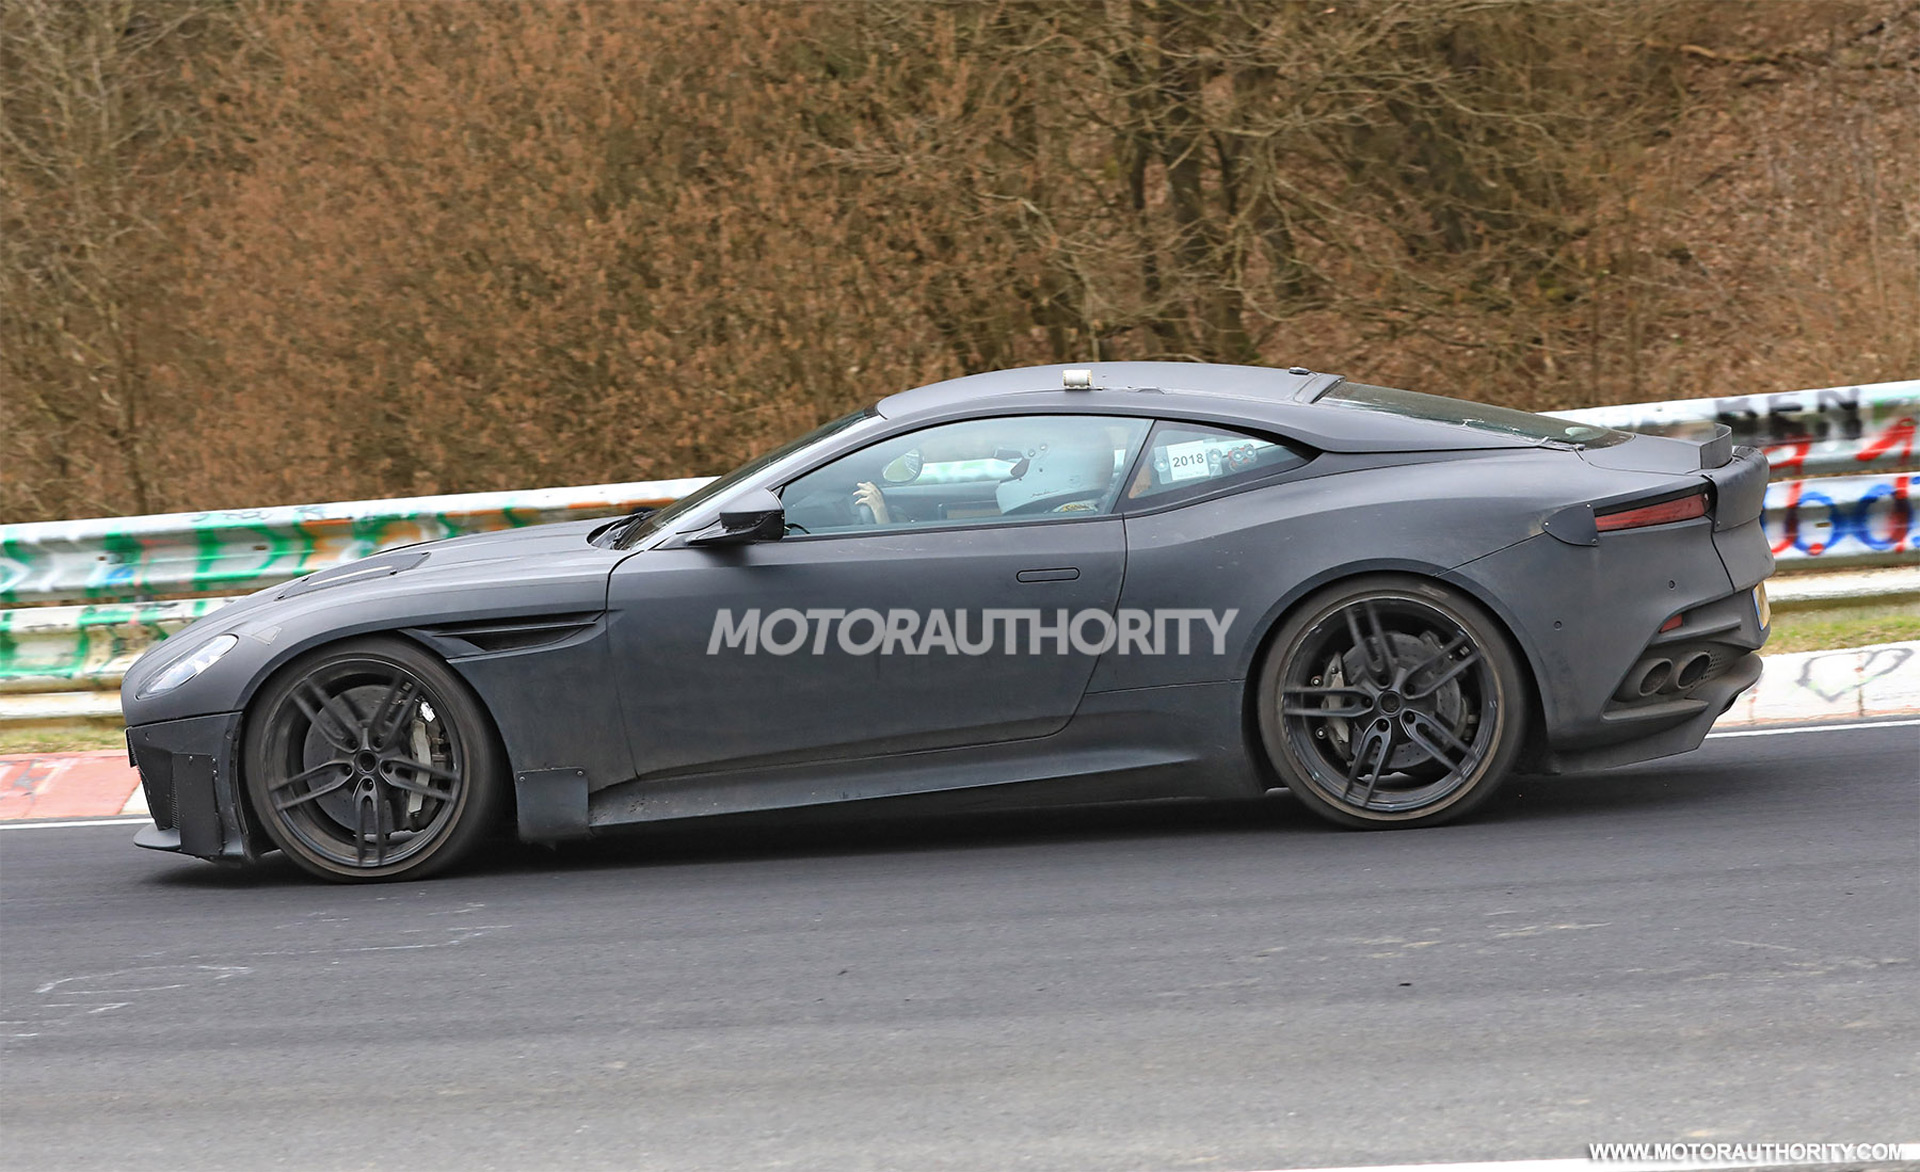 Aston Martin DBS Superleggera Spy Shots And Video - Aston martin bellevue